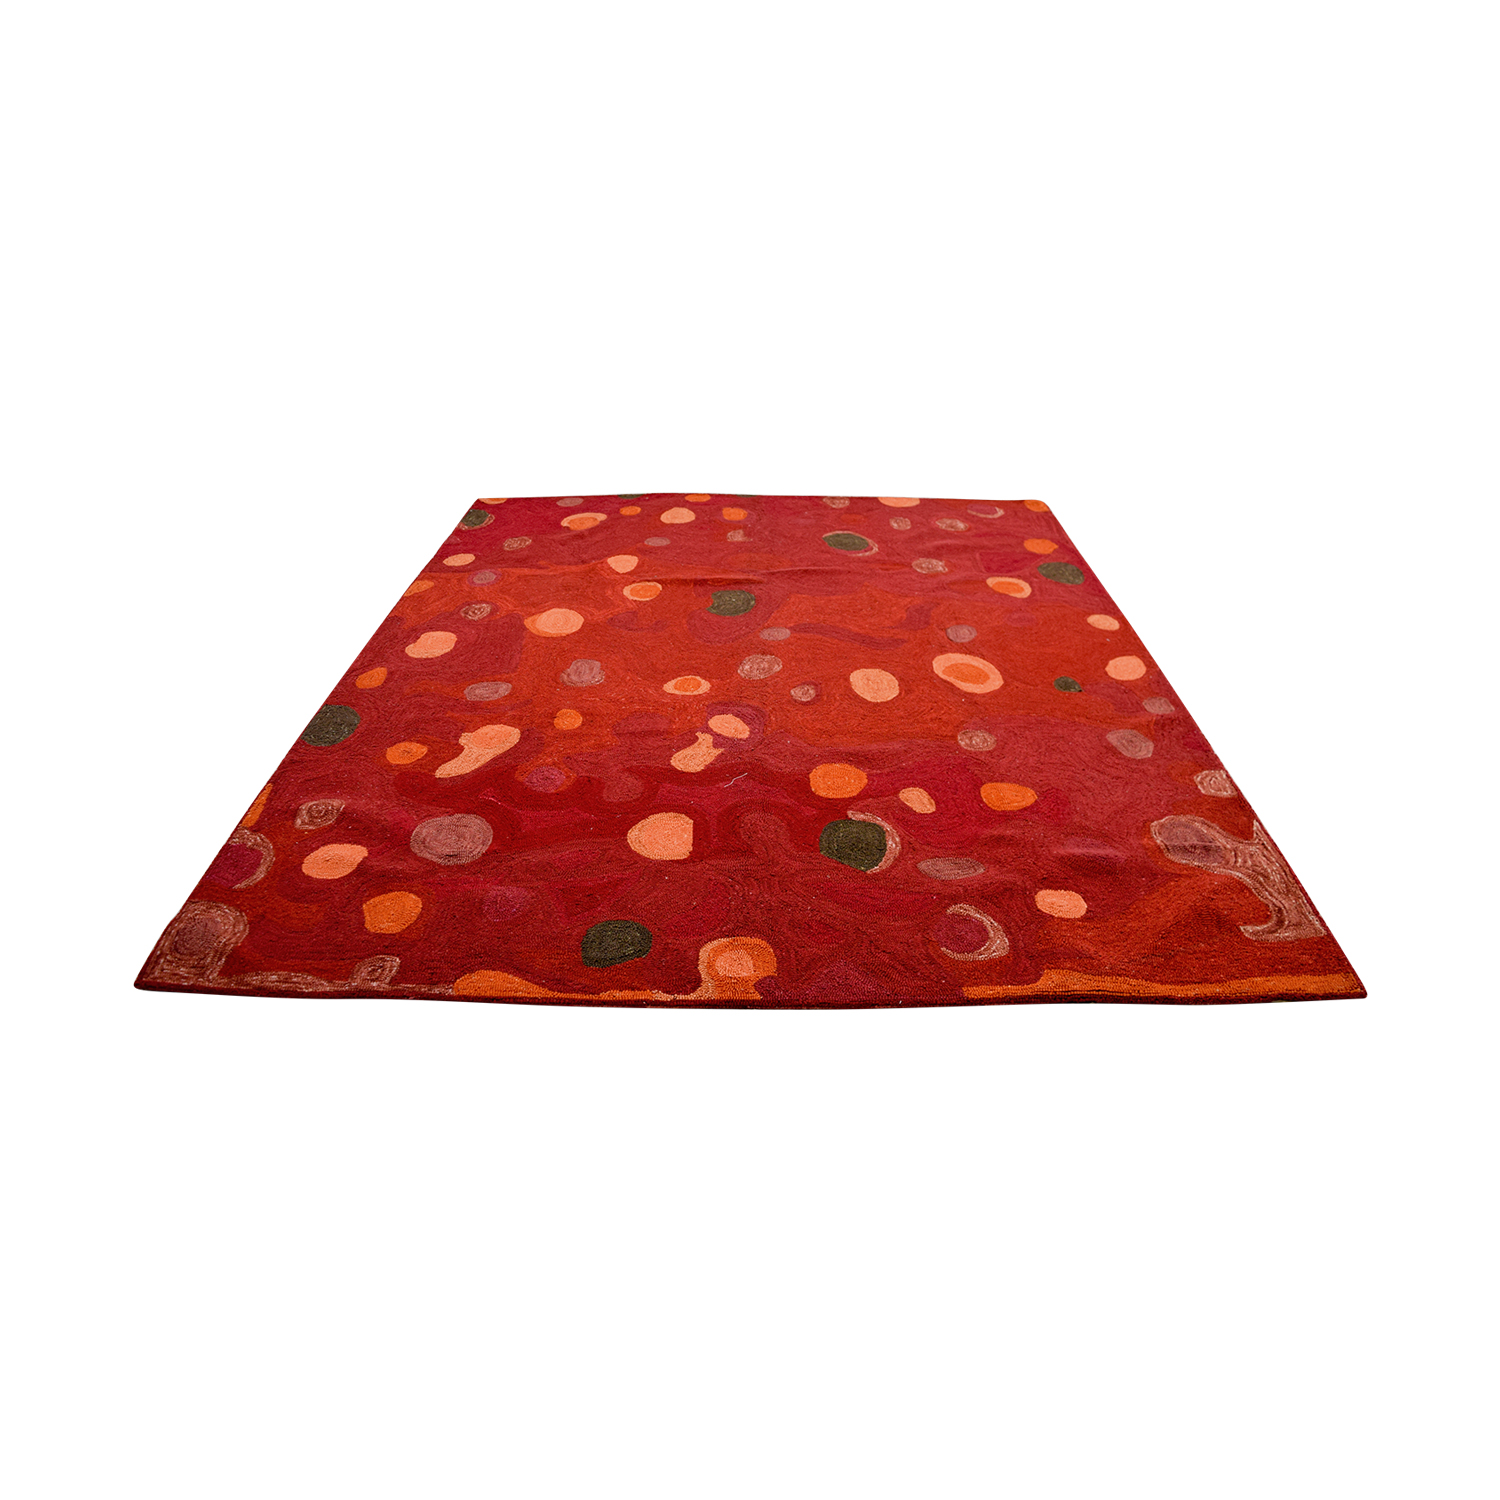 Obeetee Red with Colored Spots Rug Obeetee